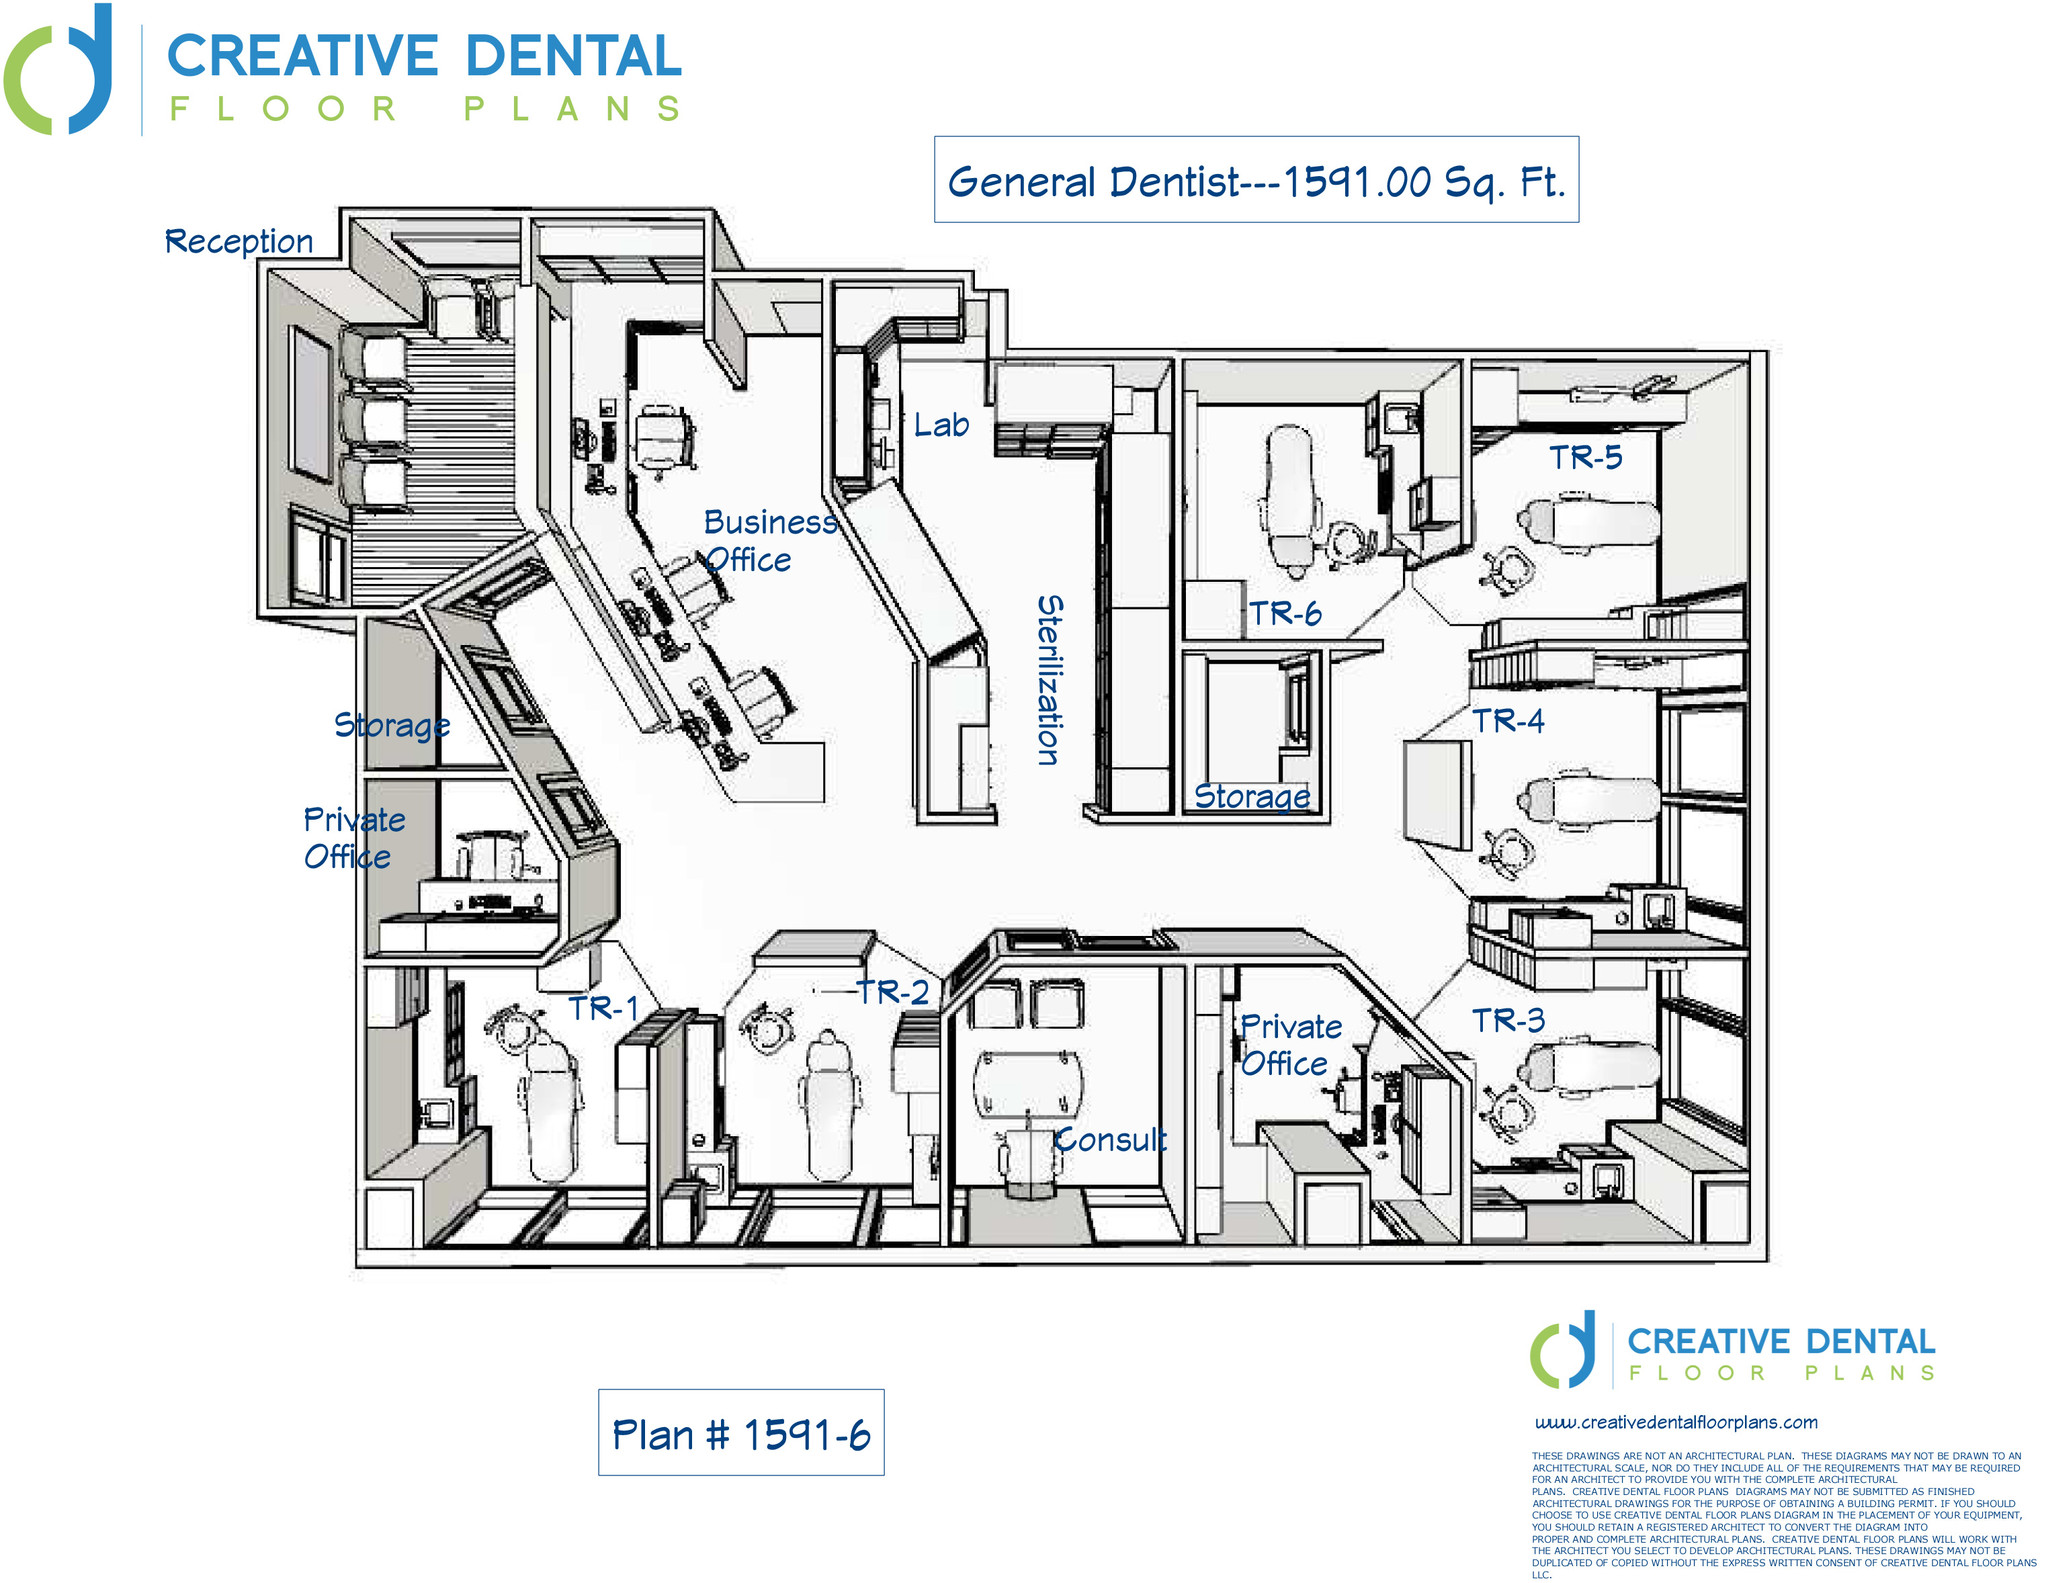 Creative dental floor plans strip mall floor plans for Floor plan layout design